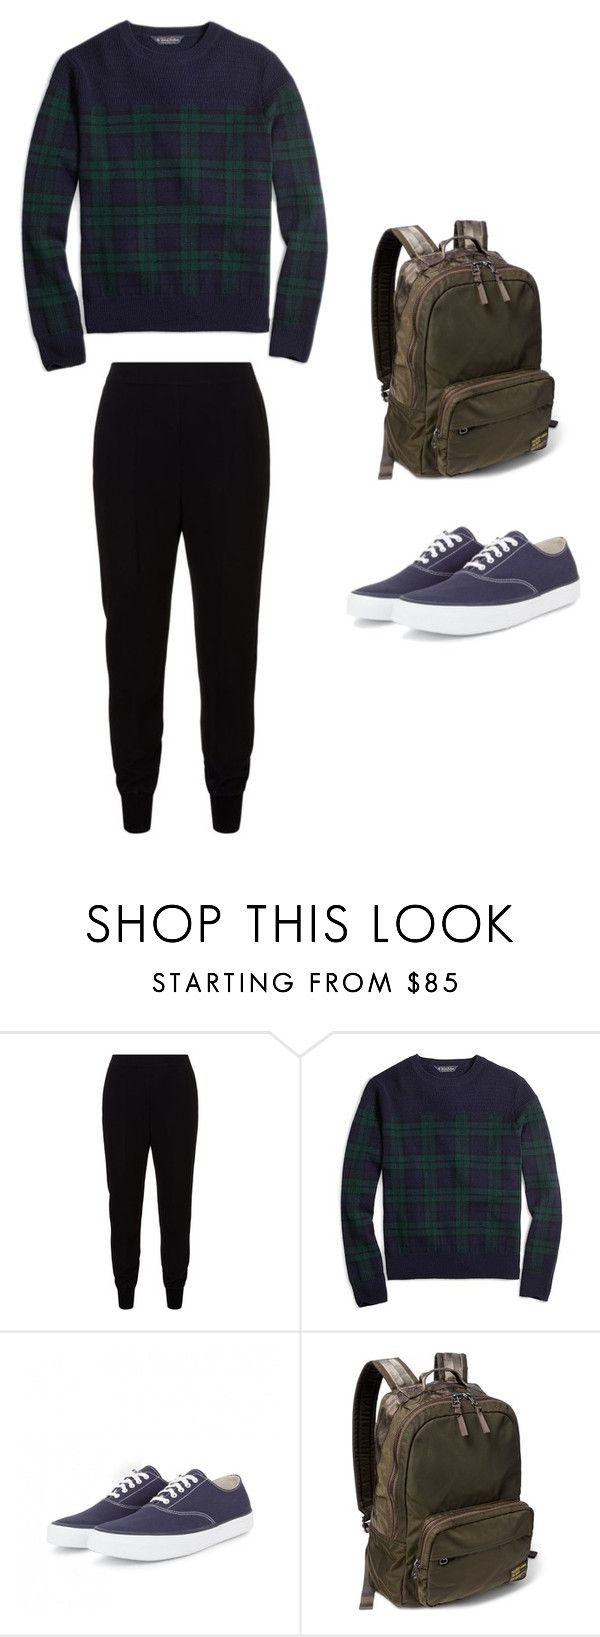 """Versatile Set"" by justian-edwin-darmawan on Polyvore featuring STELLA McCARTNEY, Brooks Brothers, Sperry, Polo Ralph Lauren, men's fashion and menswear"